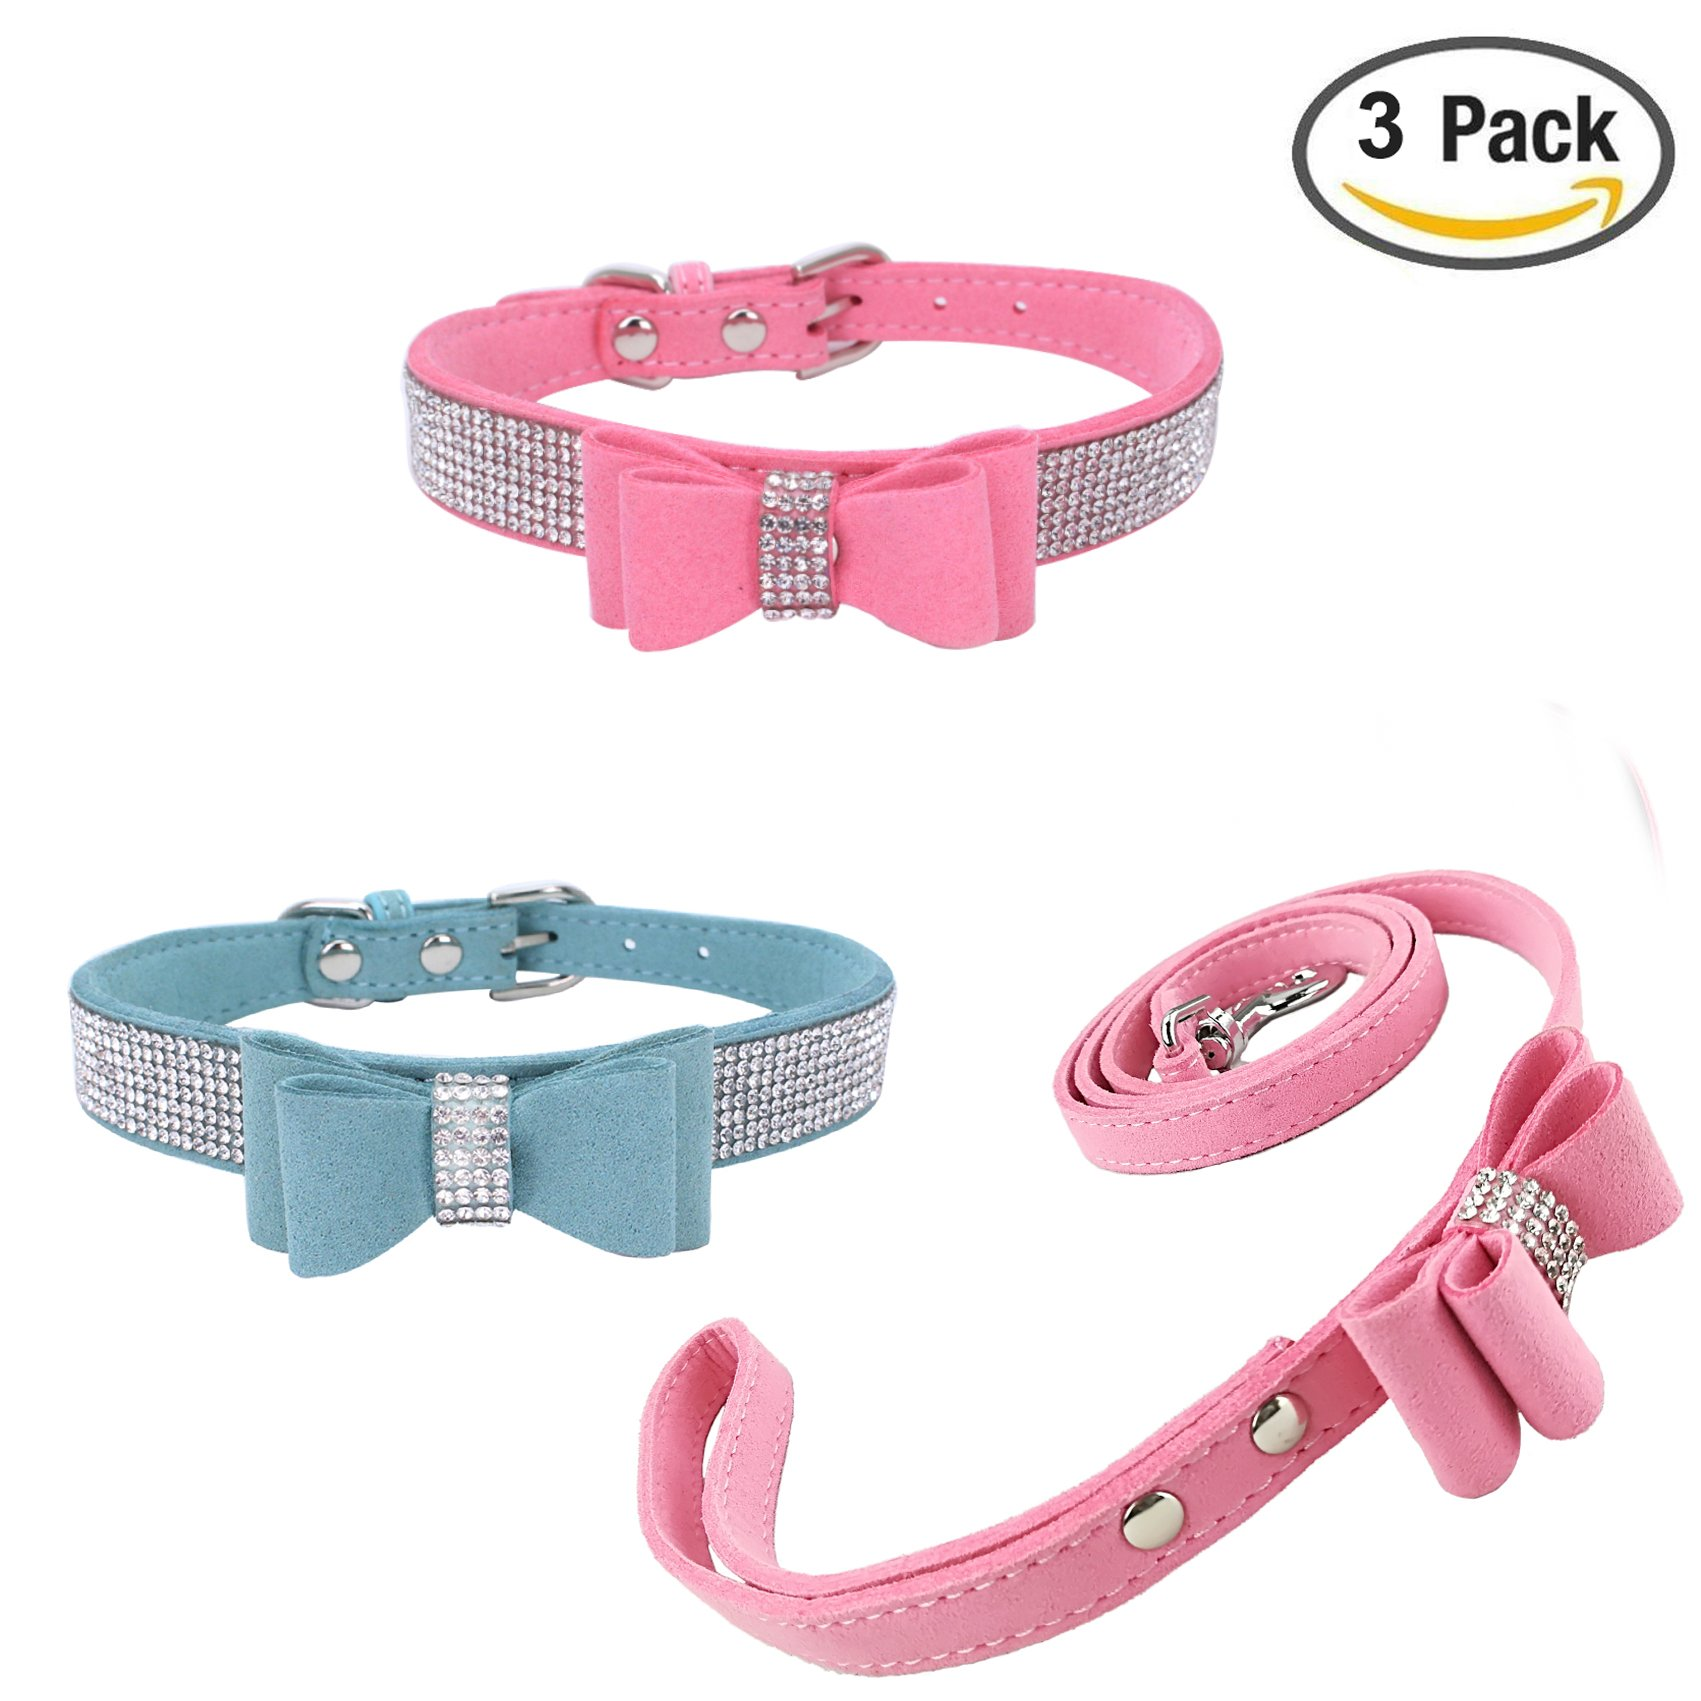 Newtensina 3pcs Stylish Dog Collar with Lead Set 2pcs Bow Tie Puppy Collar with Cute Pink Bow Tie Leash for Small Dog Cats